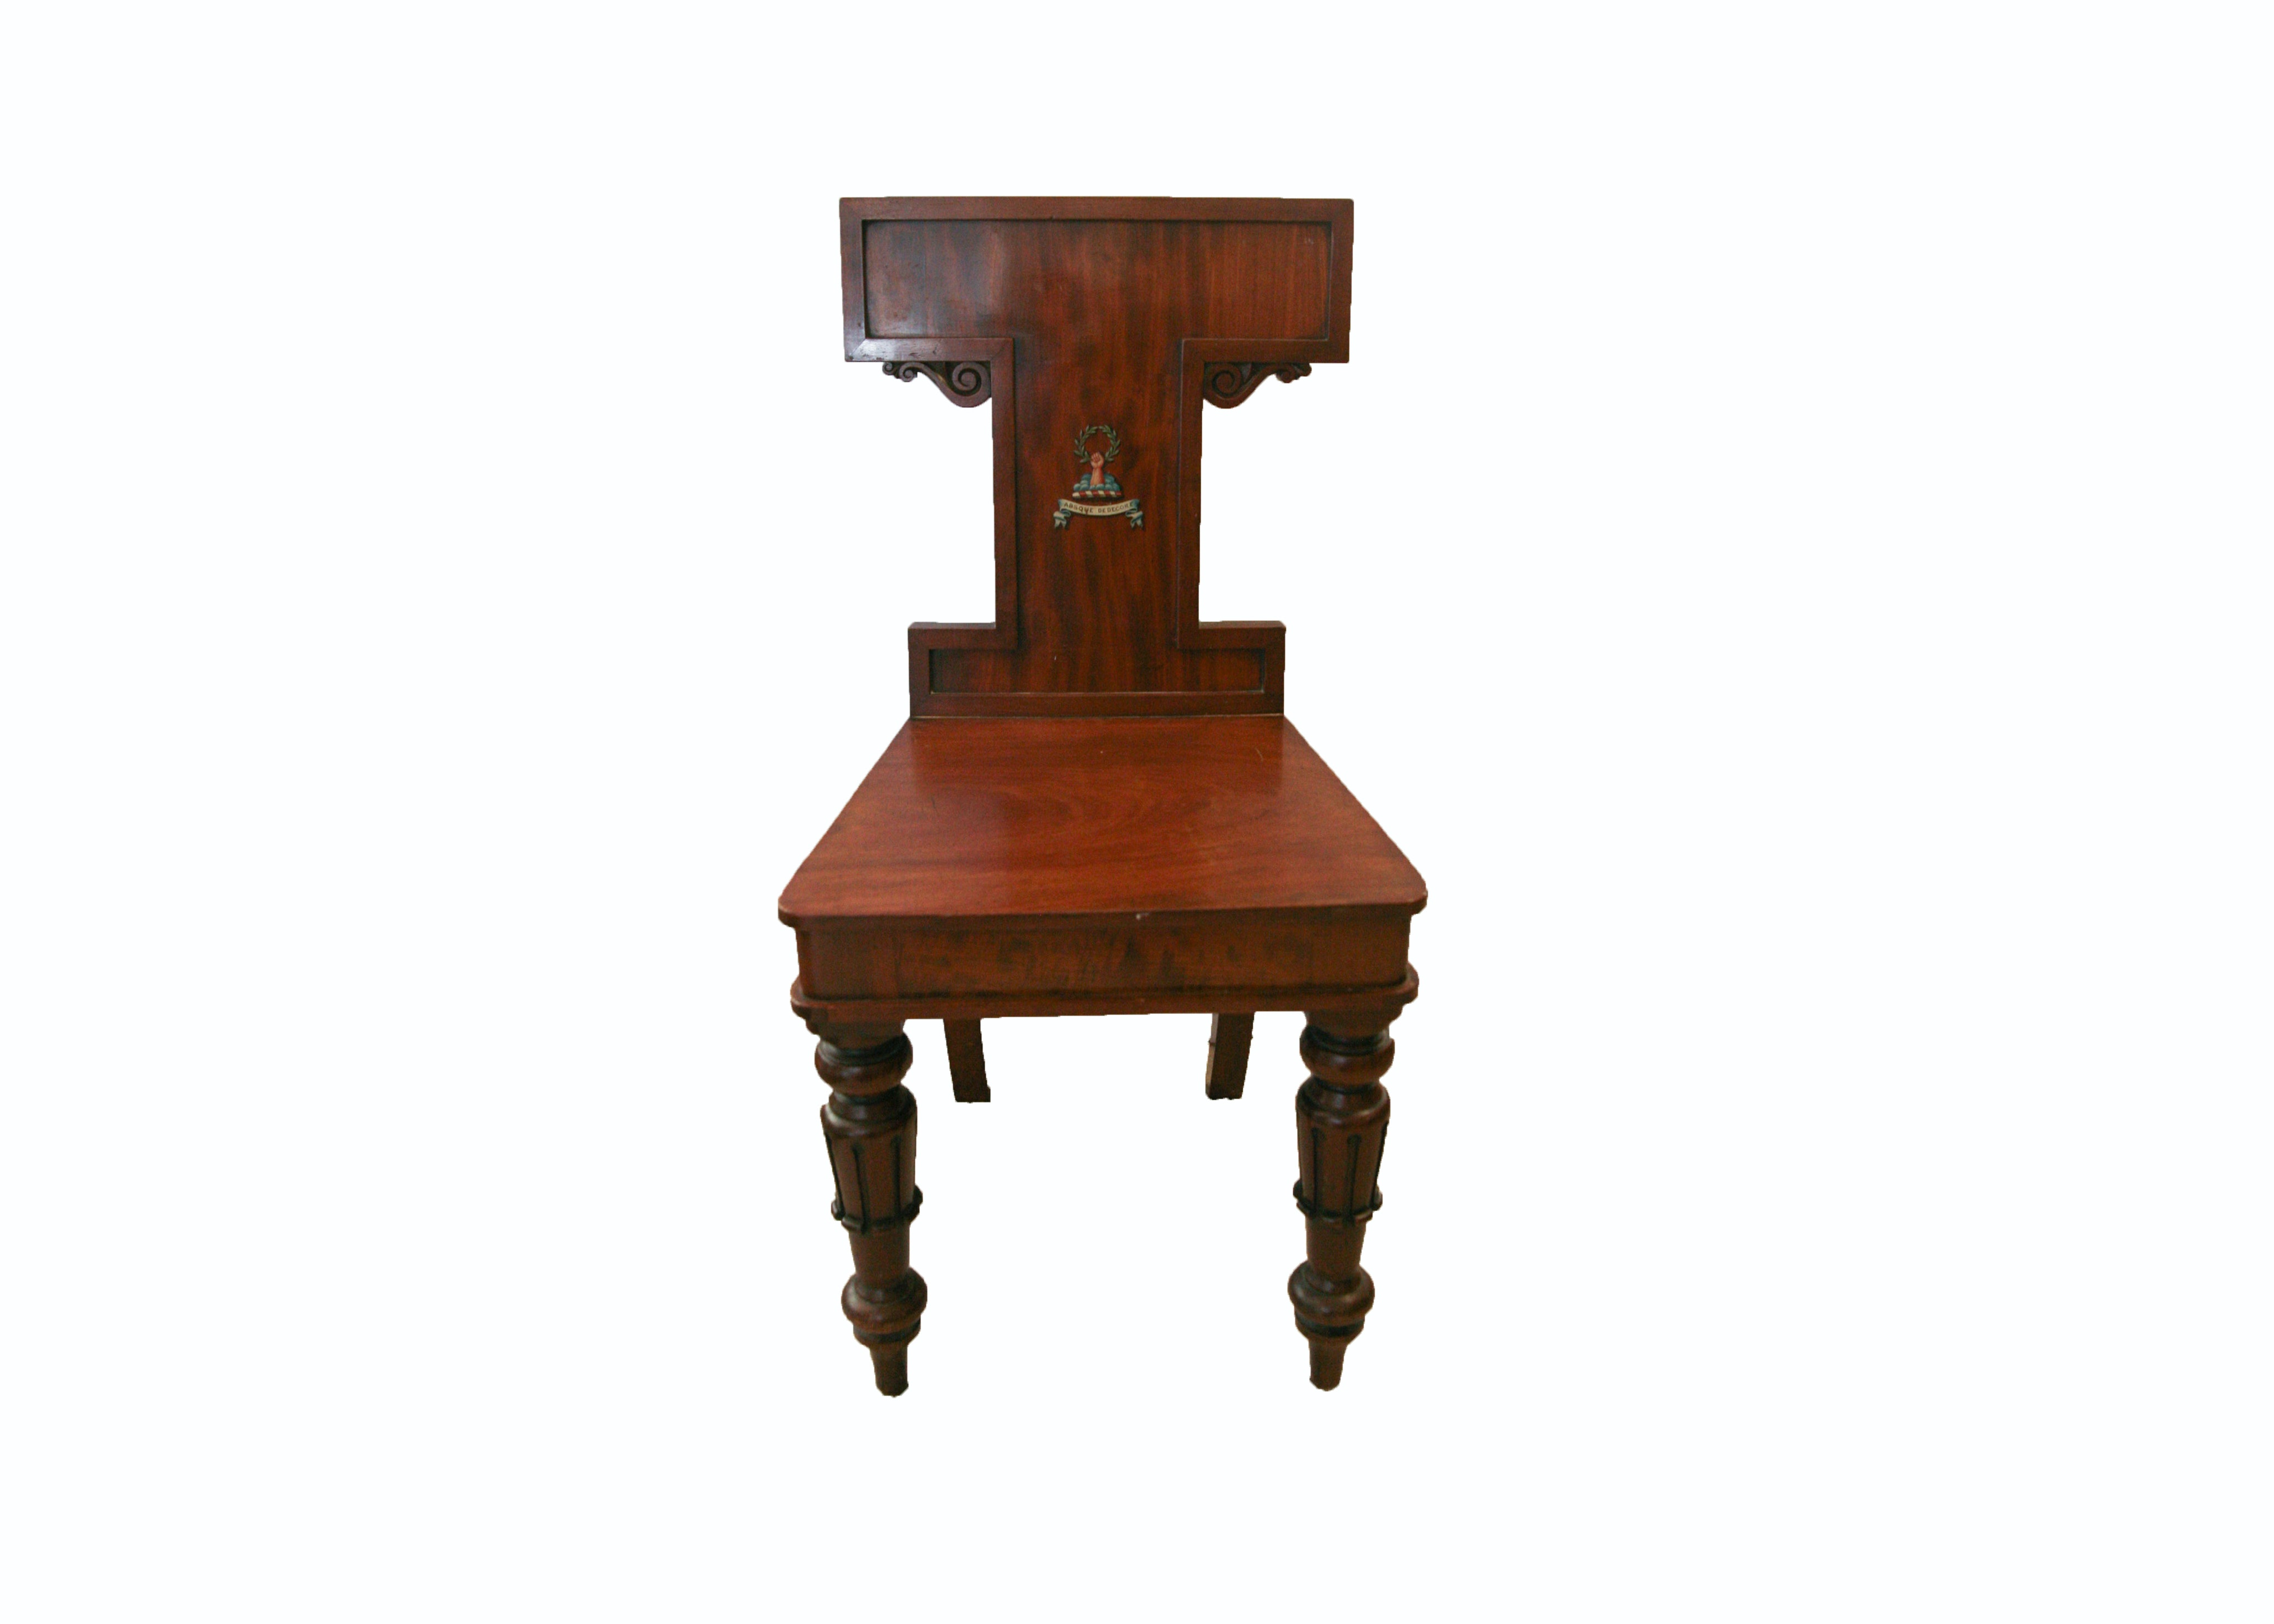 Antique English William IV Mahogany Hall Chair with Painted Heraldry